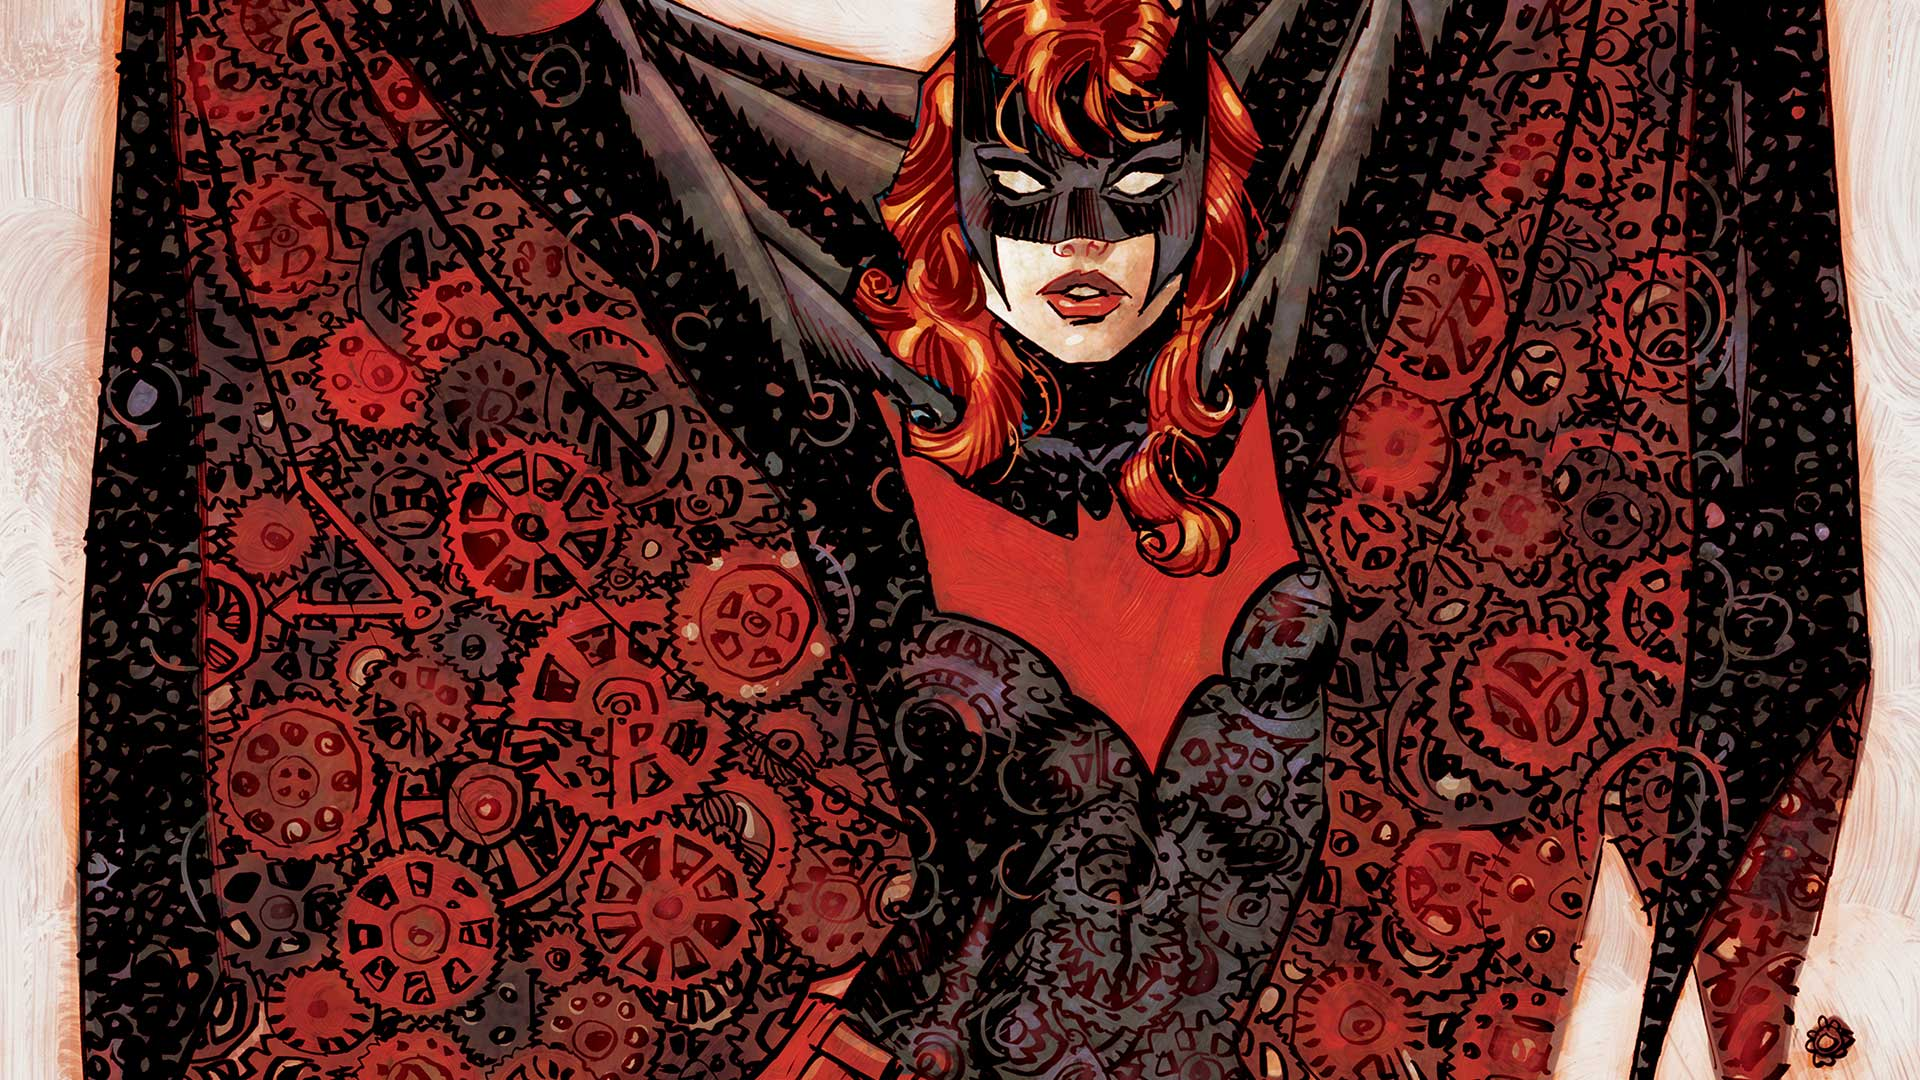 A Batwoman series is in development at The CW